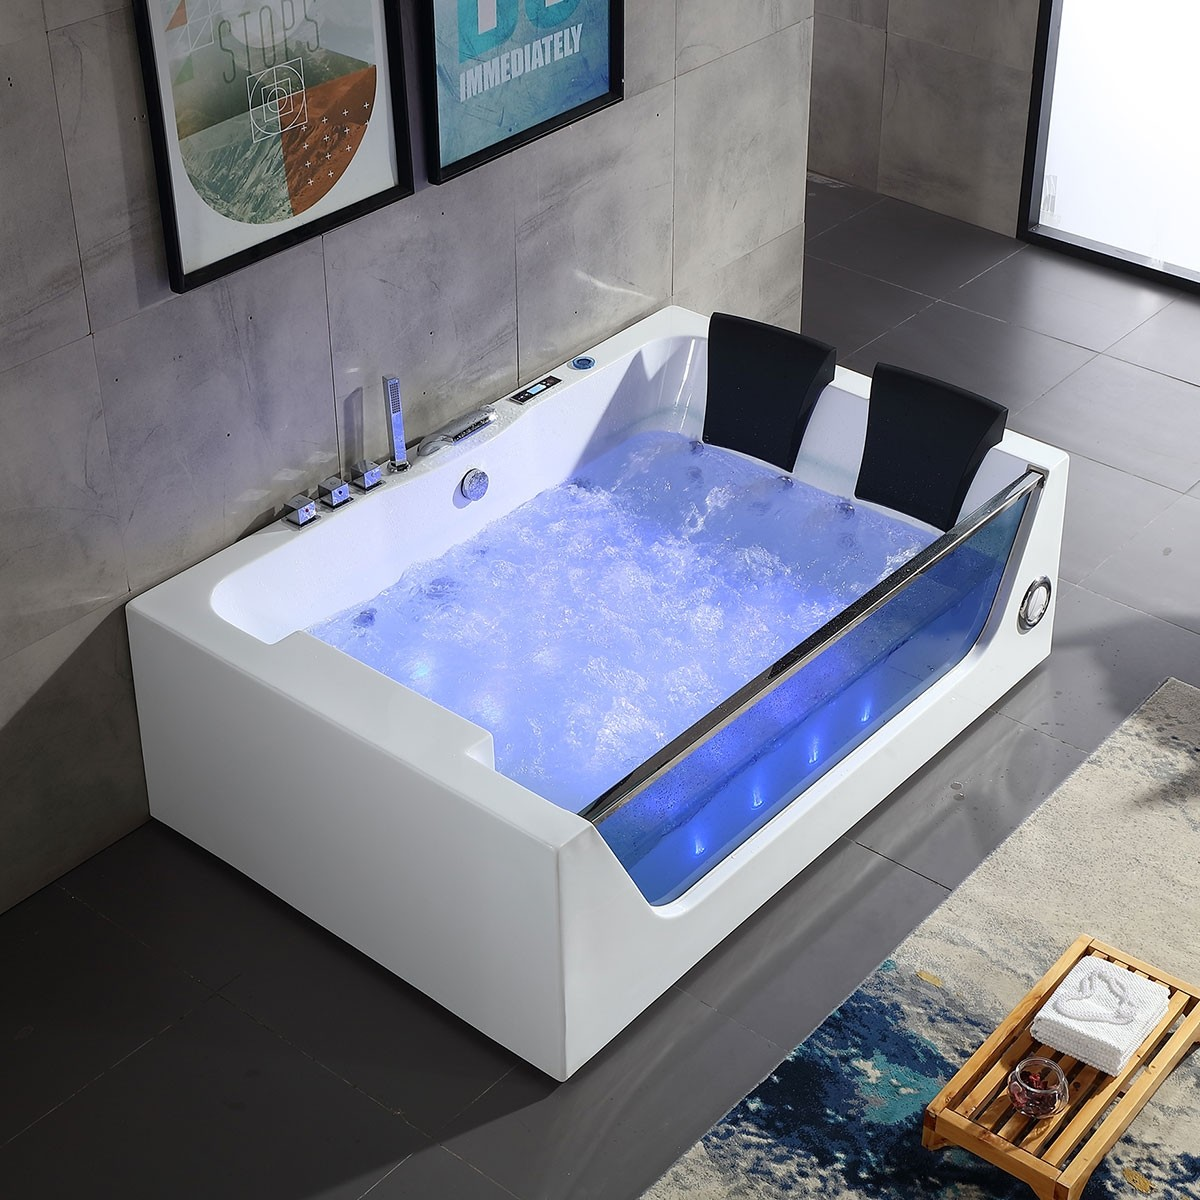 Decoraport 71 x 47 In Whirlpool Tub with Computer Panel, Air Bubble, Light (DK-Q411)